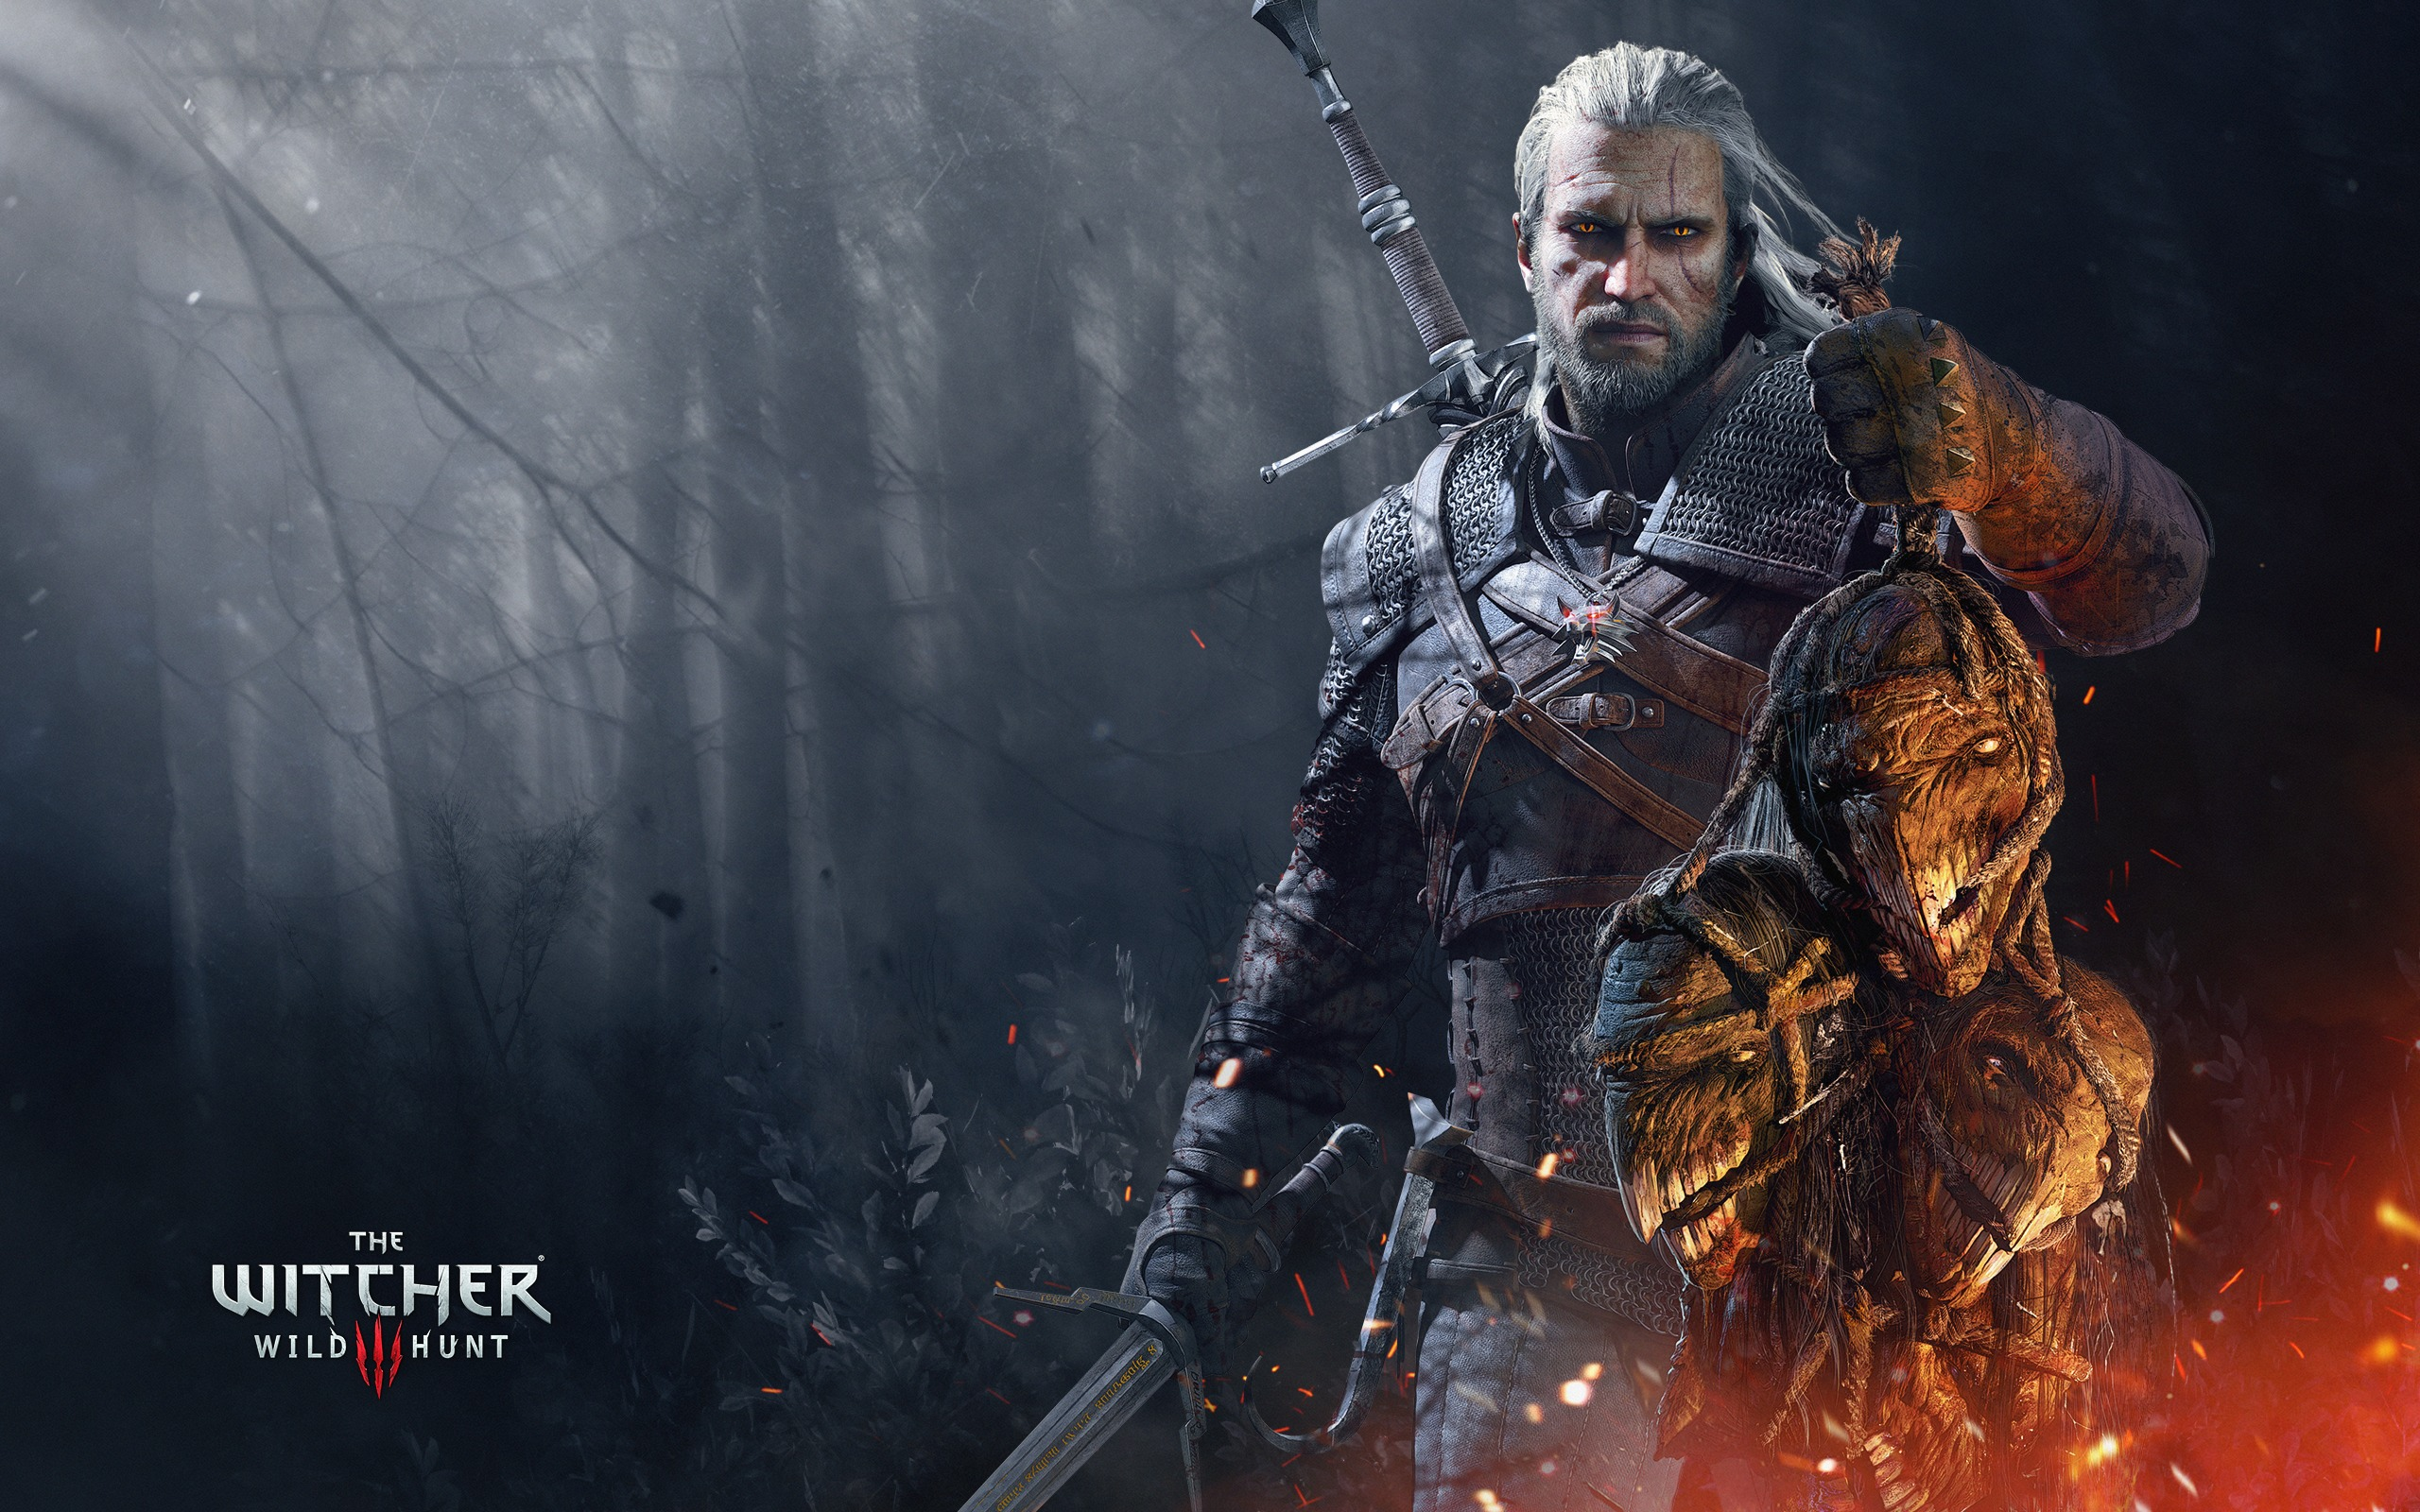 The Witcher 3: Wild Hunt Now Has A Confirmed Release Date For The Nintendo Switch Launch, Announced Opening Night Of Gamescom 2019